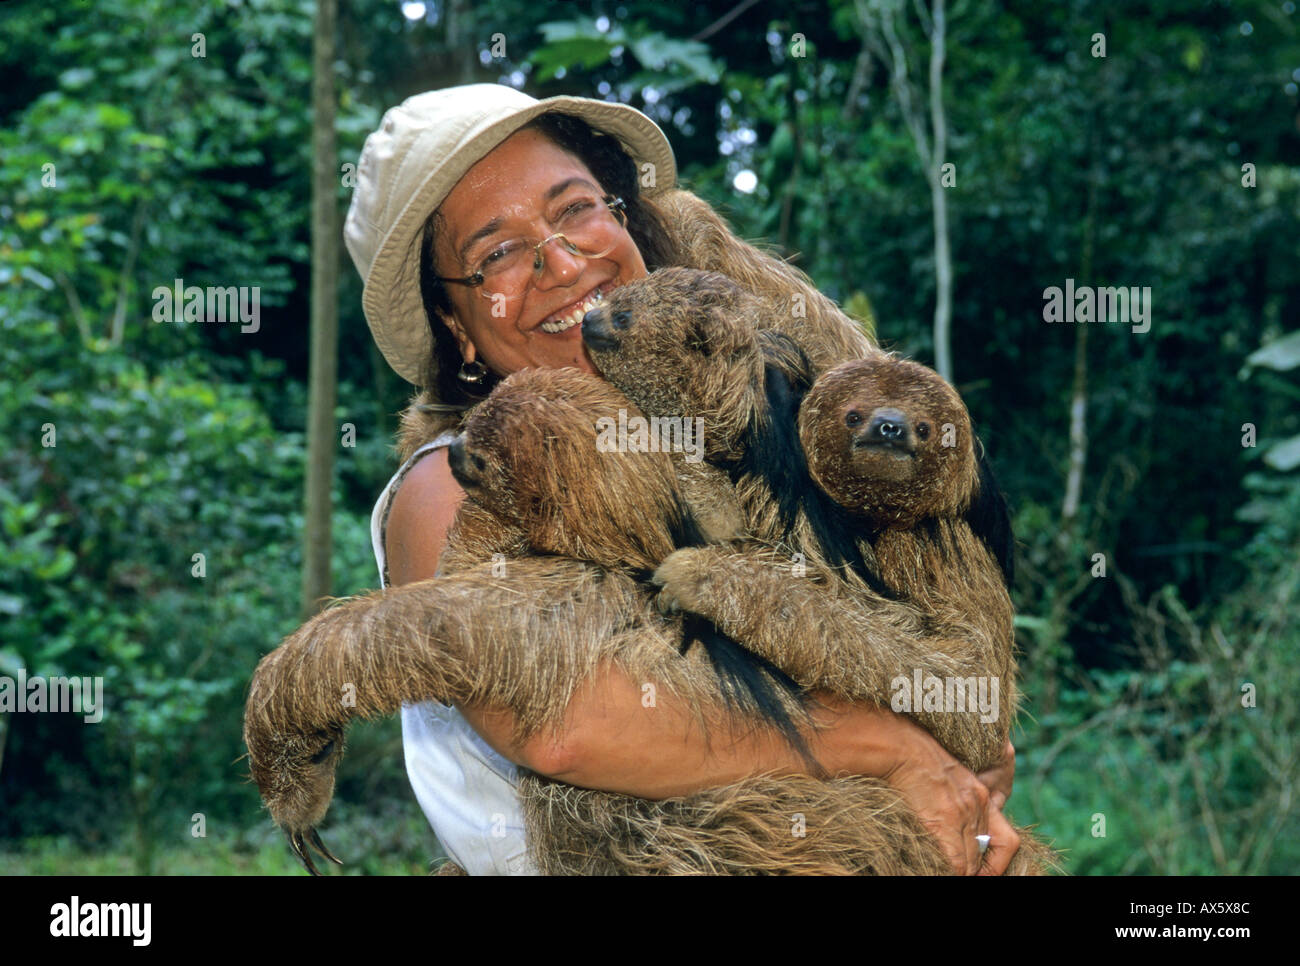 Maned Sloth (Bradypus torquatus) Endangered, with Vera Oliveira, Ai Project rehab center, Bahia State, Brazil  ATLANTIC FOREST - Stock Image